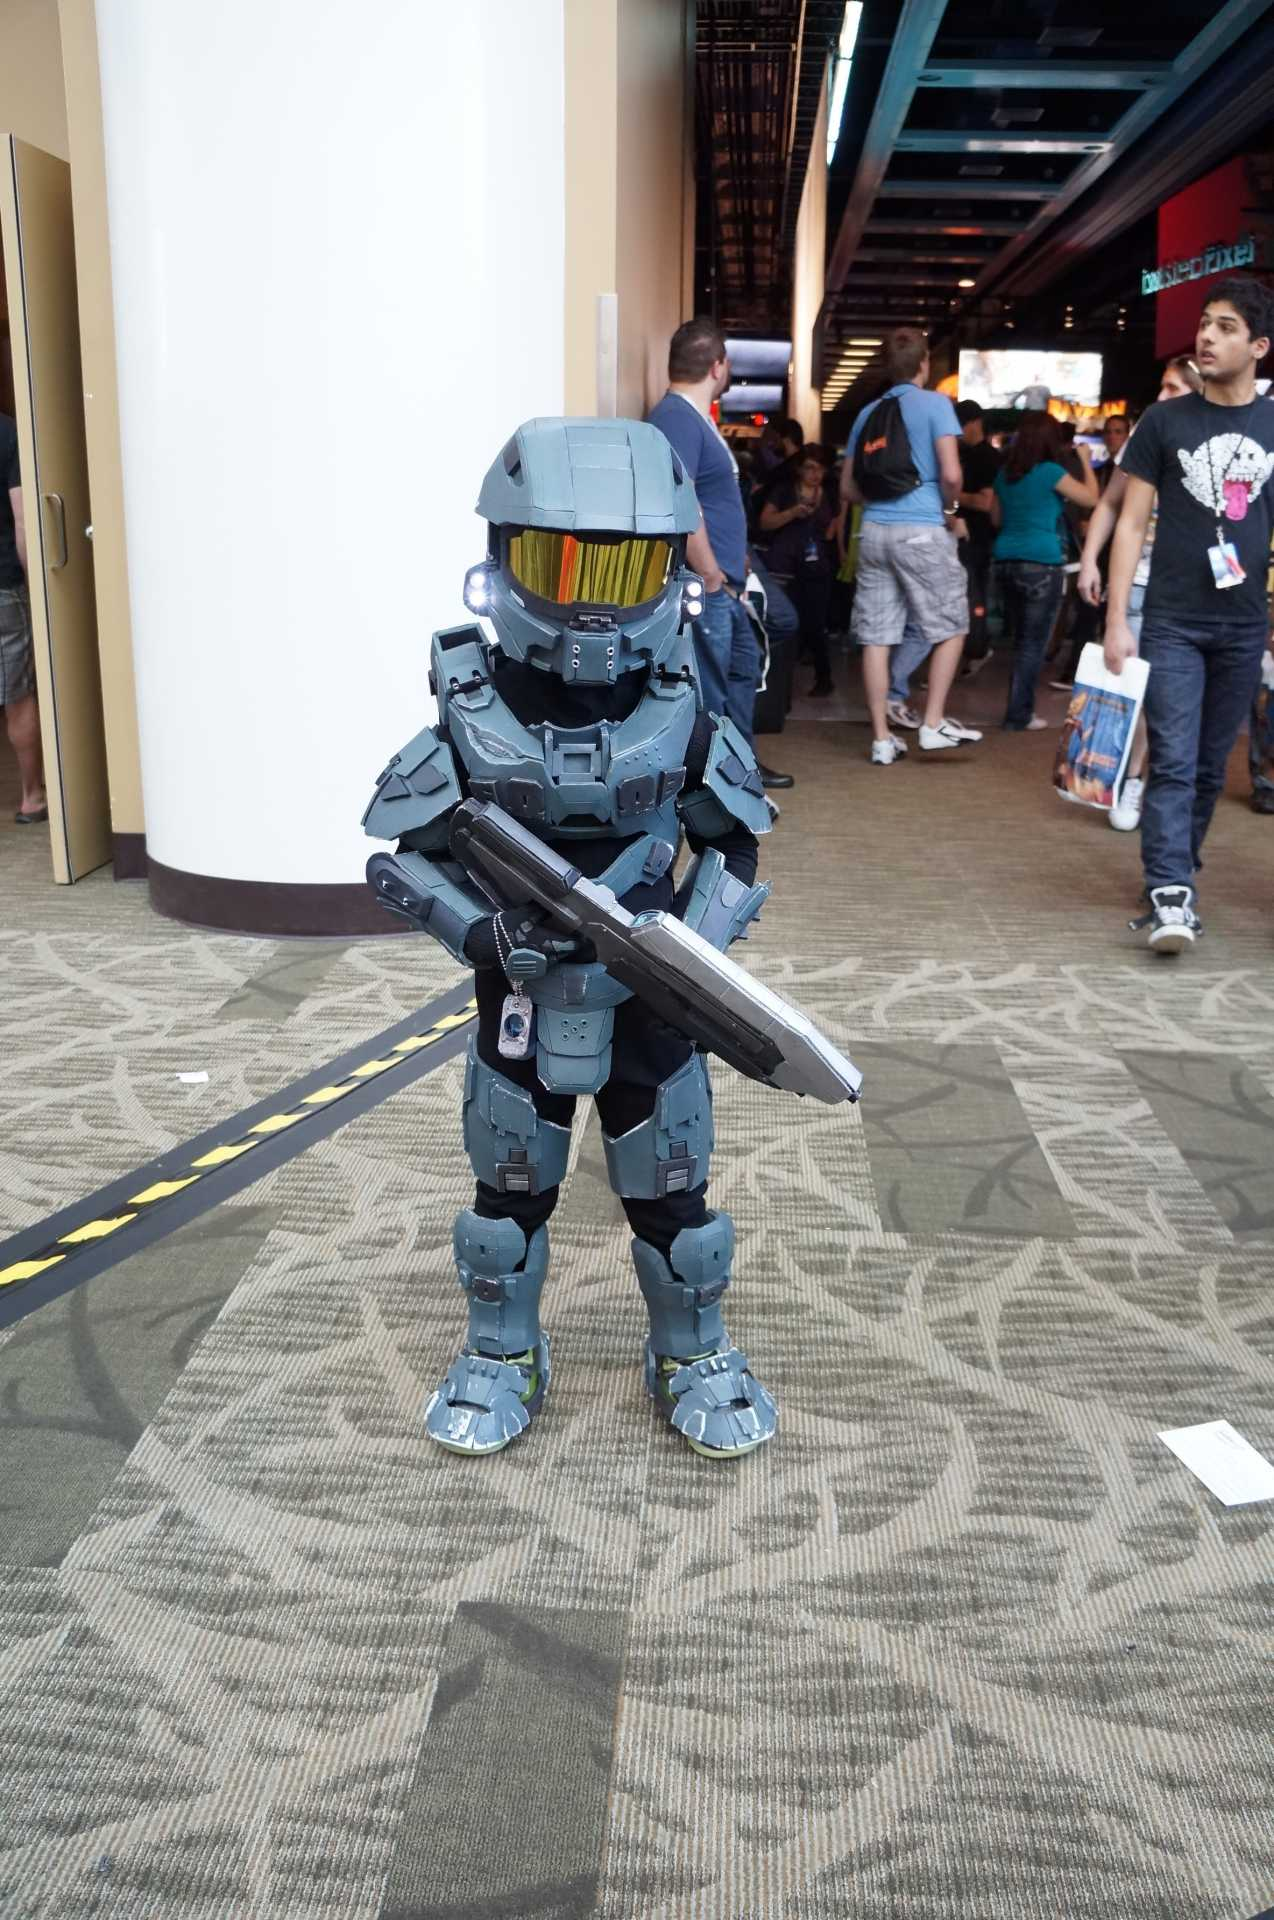 Halo 3 Halo Wars Halo Spartan Assault Halo The Master Chief Collection Master Chief & Image - 600893] | Cosplay | Know Your Meme